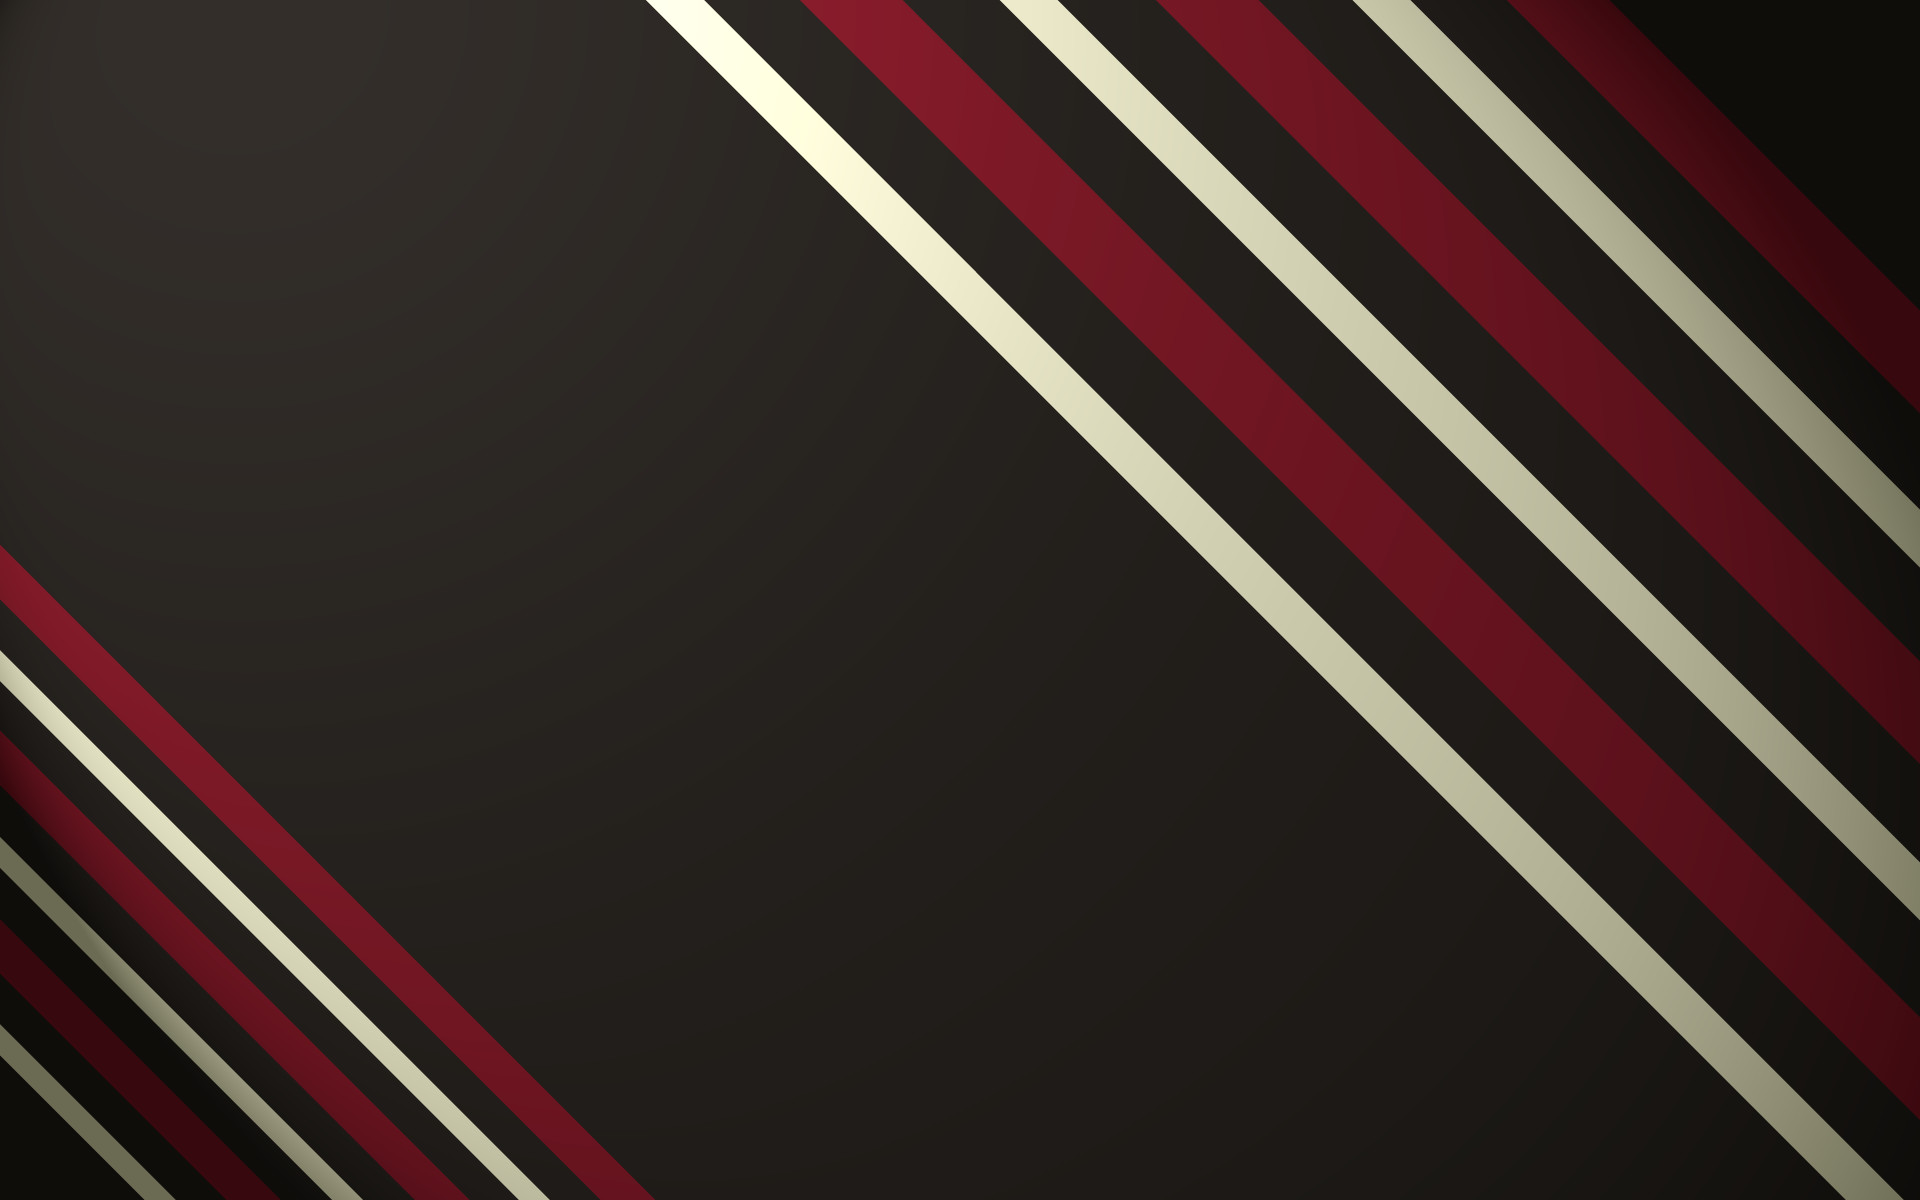 Free Desktop Wallpapers (43+): Abstract Lines Wallpapers .